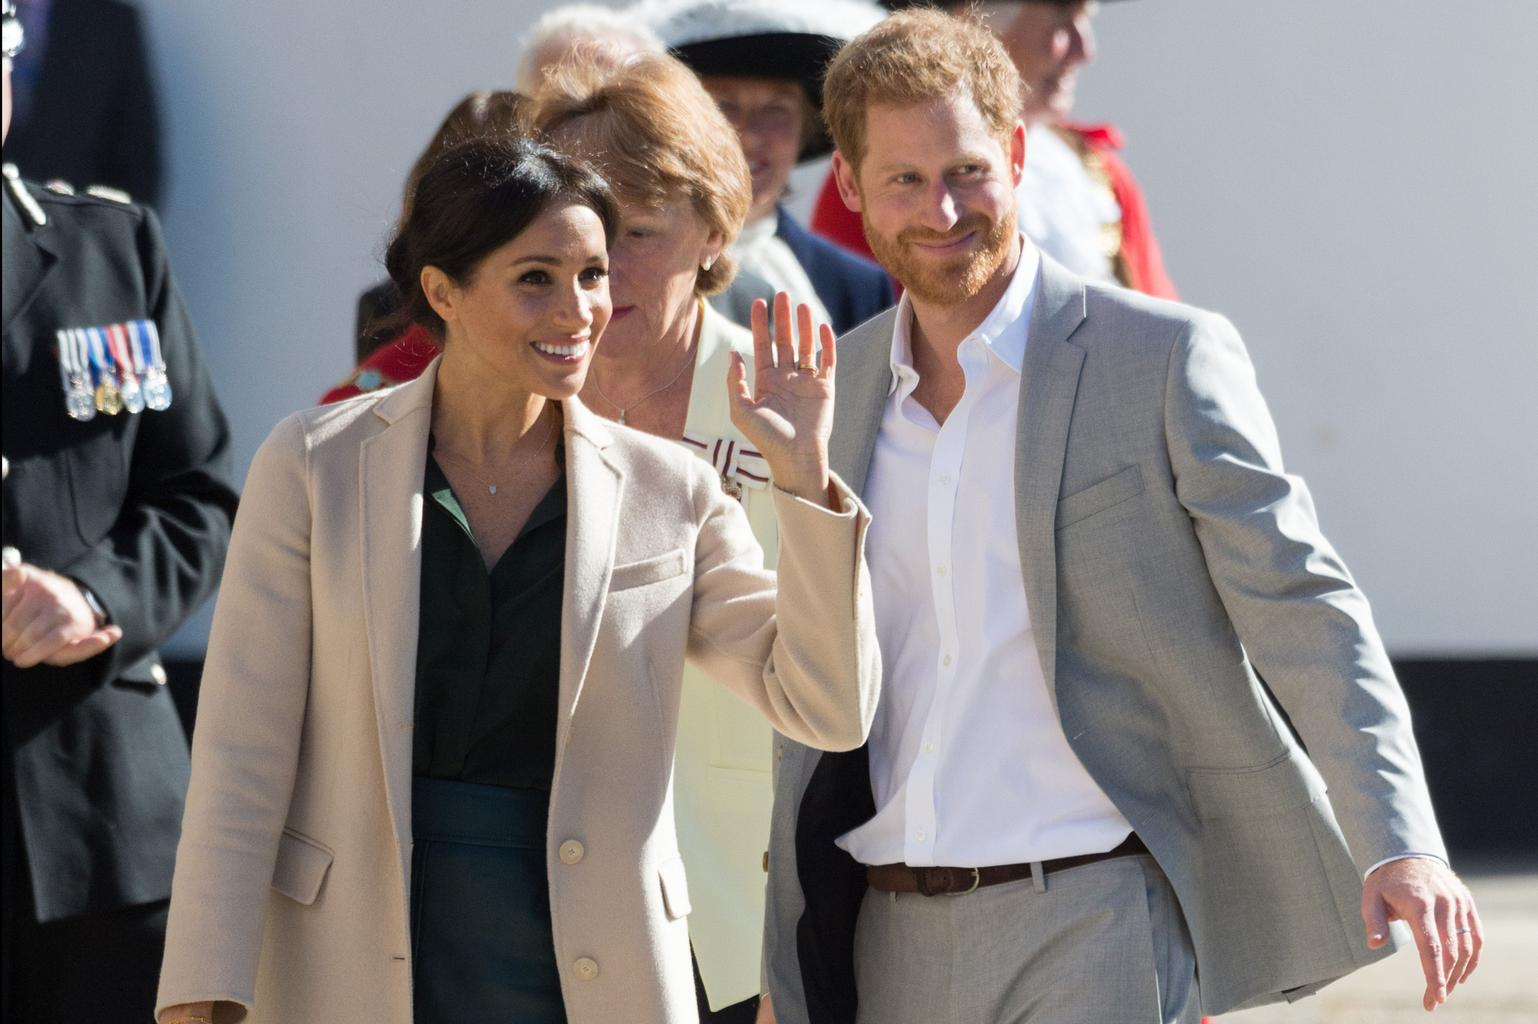 The most adorable moment of the royal tour so far